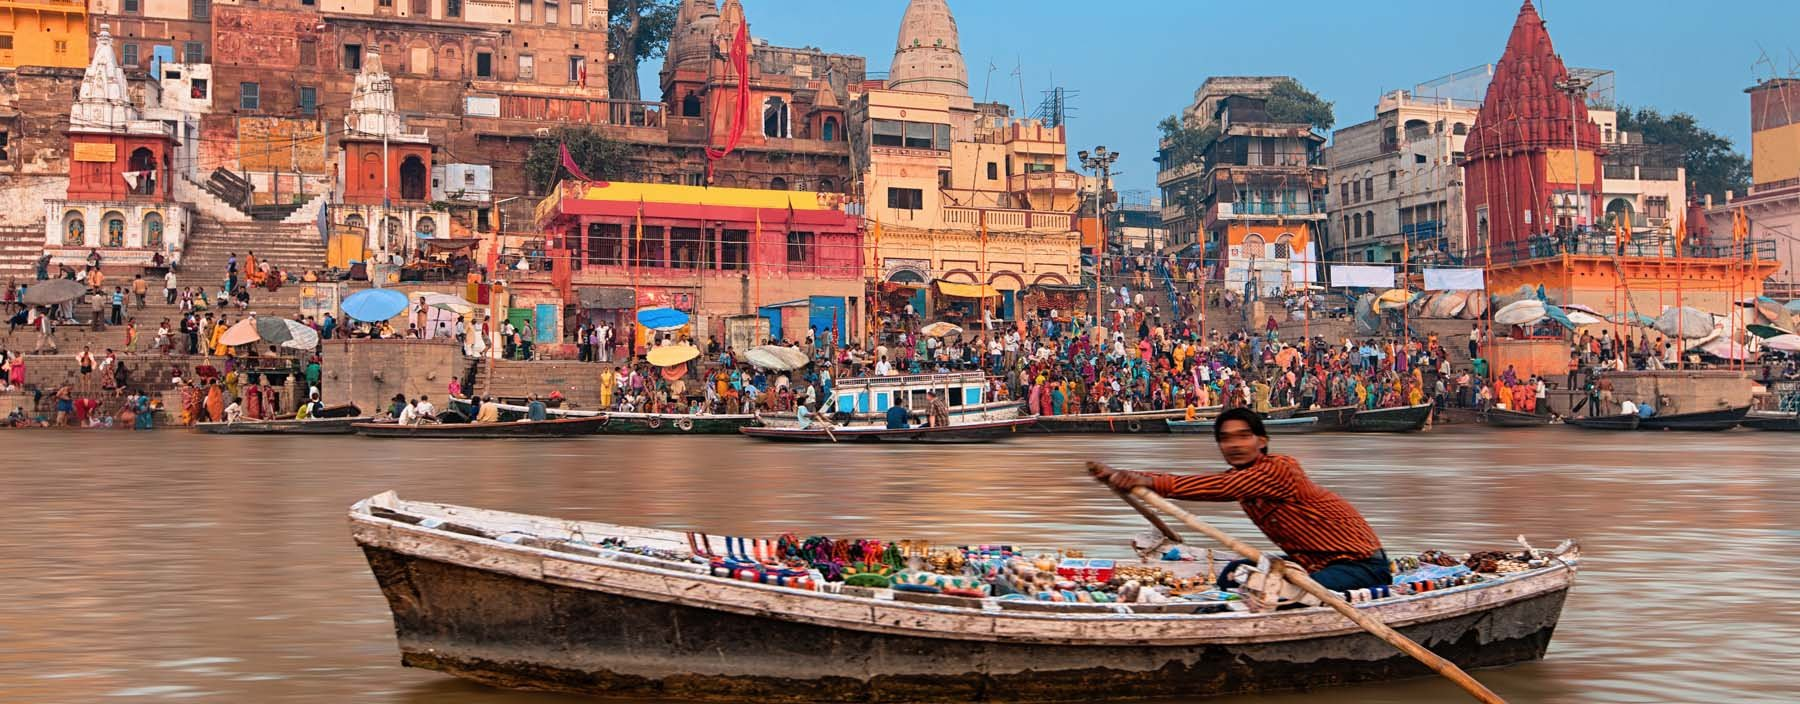 in, varanasi, a view of holy ghats.jpg